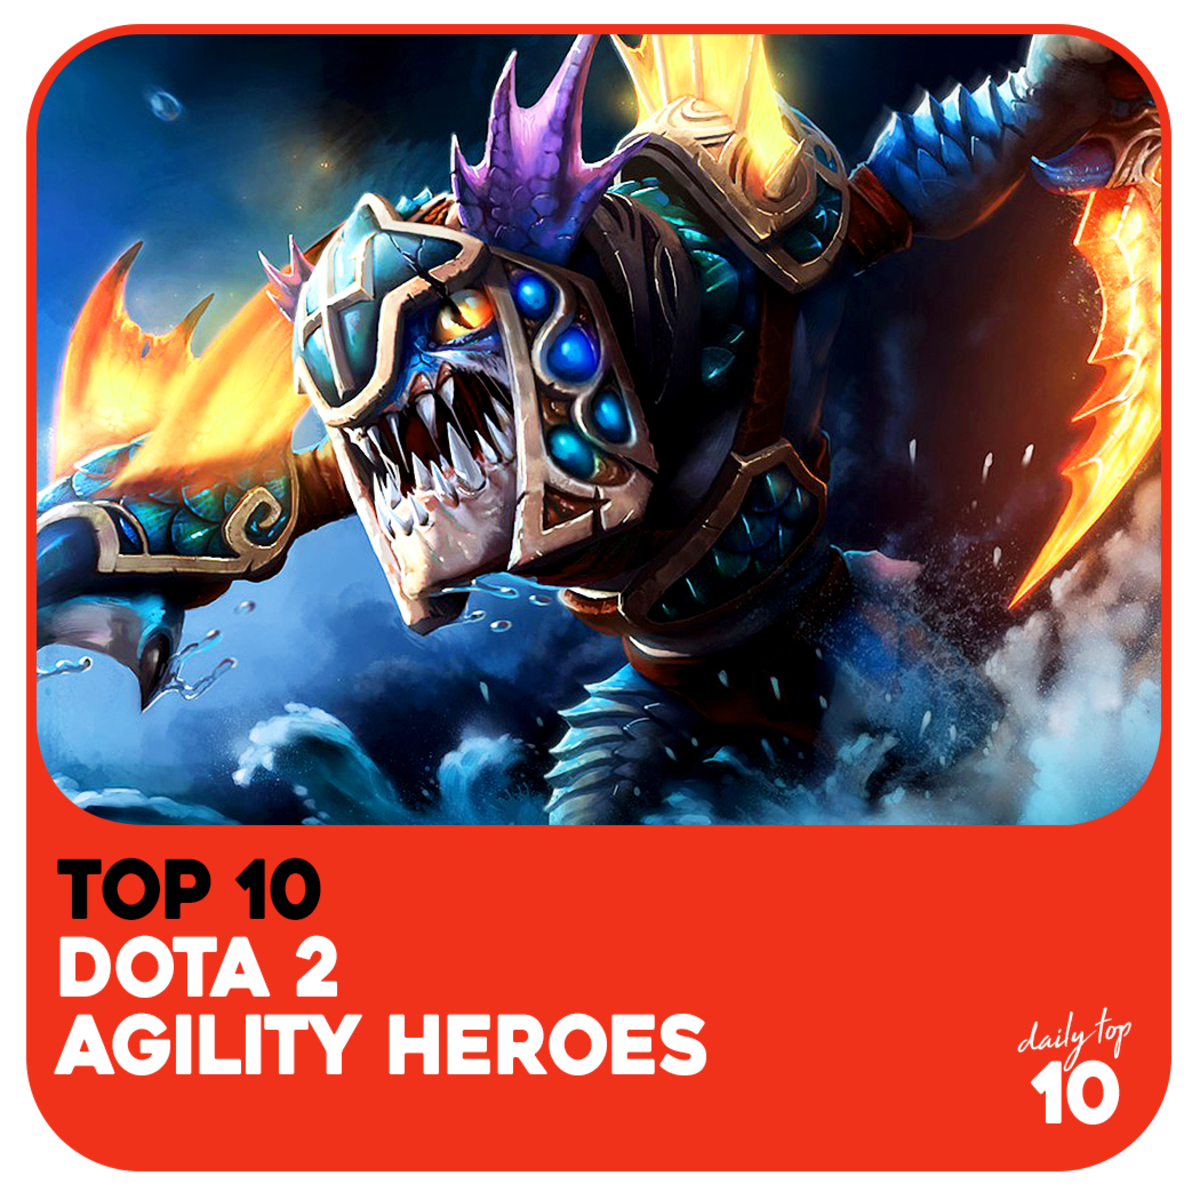 Top 10 Best Agility Dota 2 Heroes With Pictures Updated 2019 Hubpages